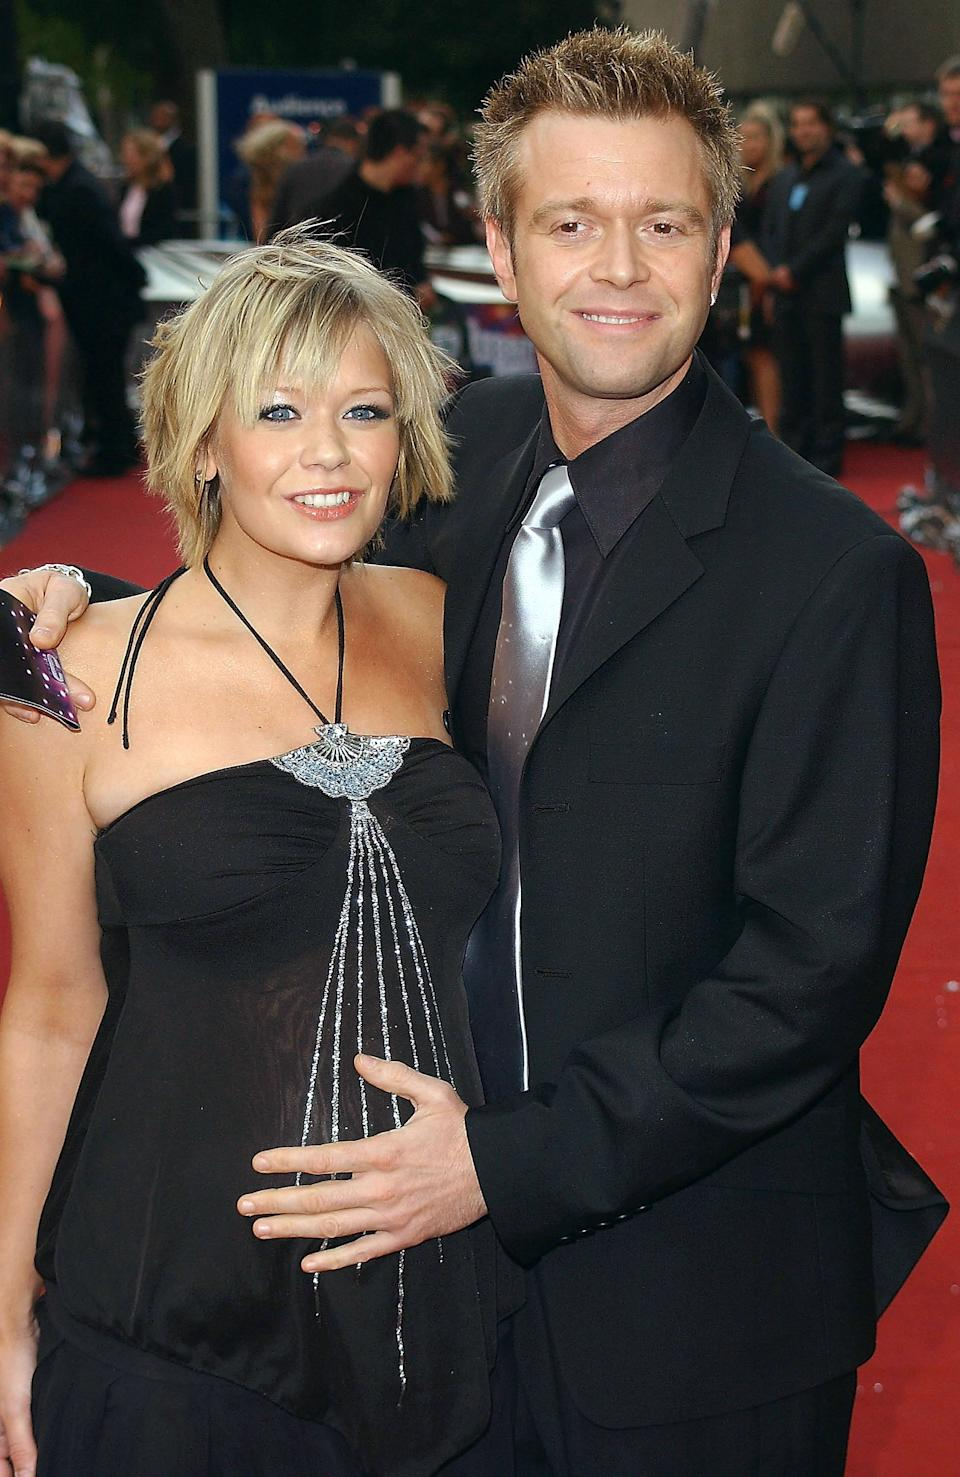 Suzanne Shaw and Darren Day arrive at the Celebrity Awards at London Television Centre on September 26, 2004 in London. The ceremony honours the year's most popular and successful stars. Voted for both by viewers and a panel of judges, categories include Celebrity Newcomer, Funniest Celebrity, International Celebrity, Sexiest Male Celebrity and Sexiest Female Celebrity. (Photo by David Westing/Getty Images)